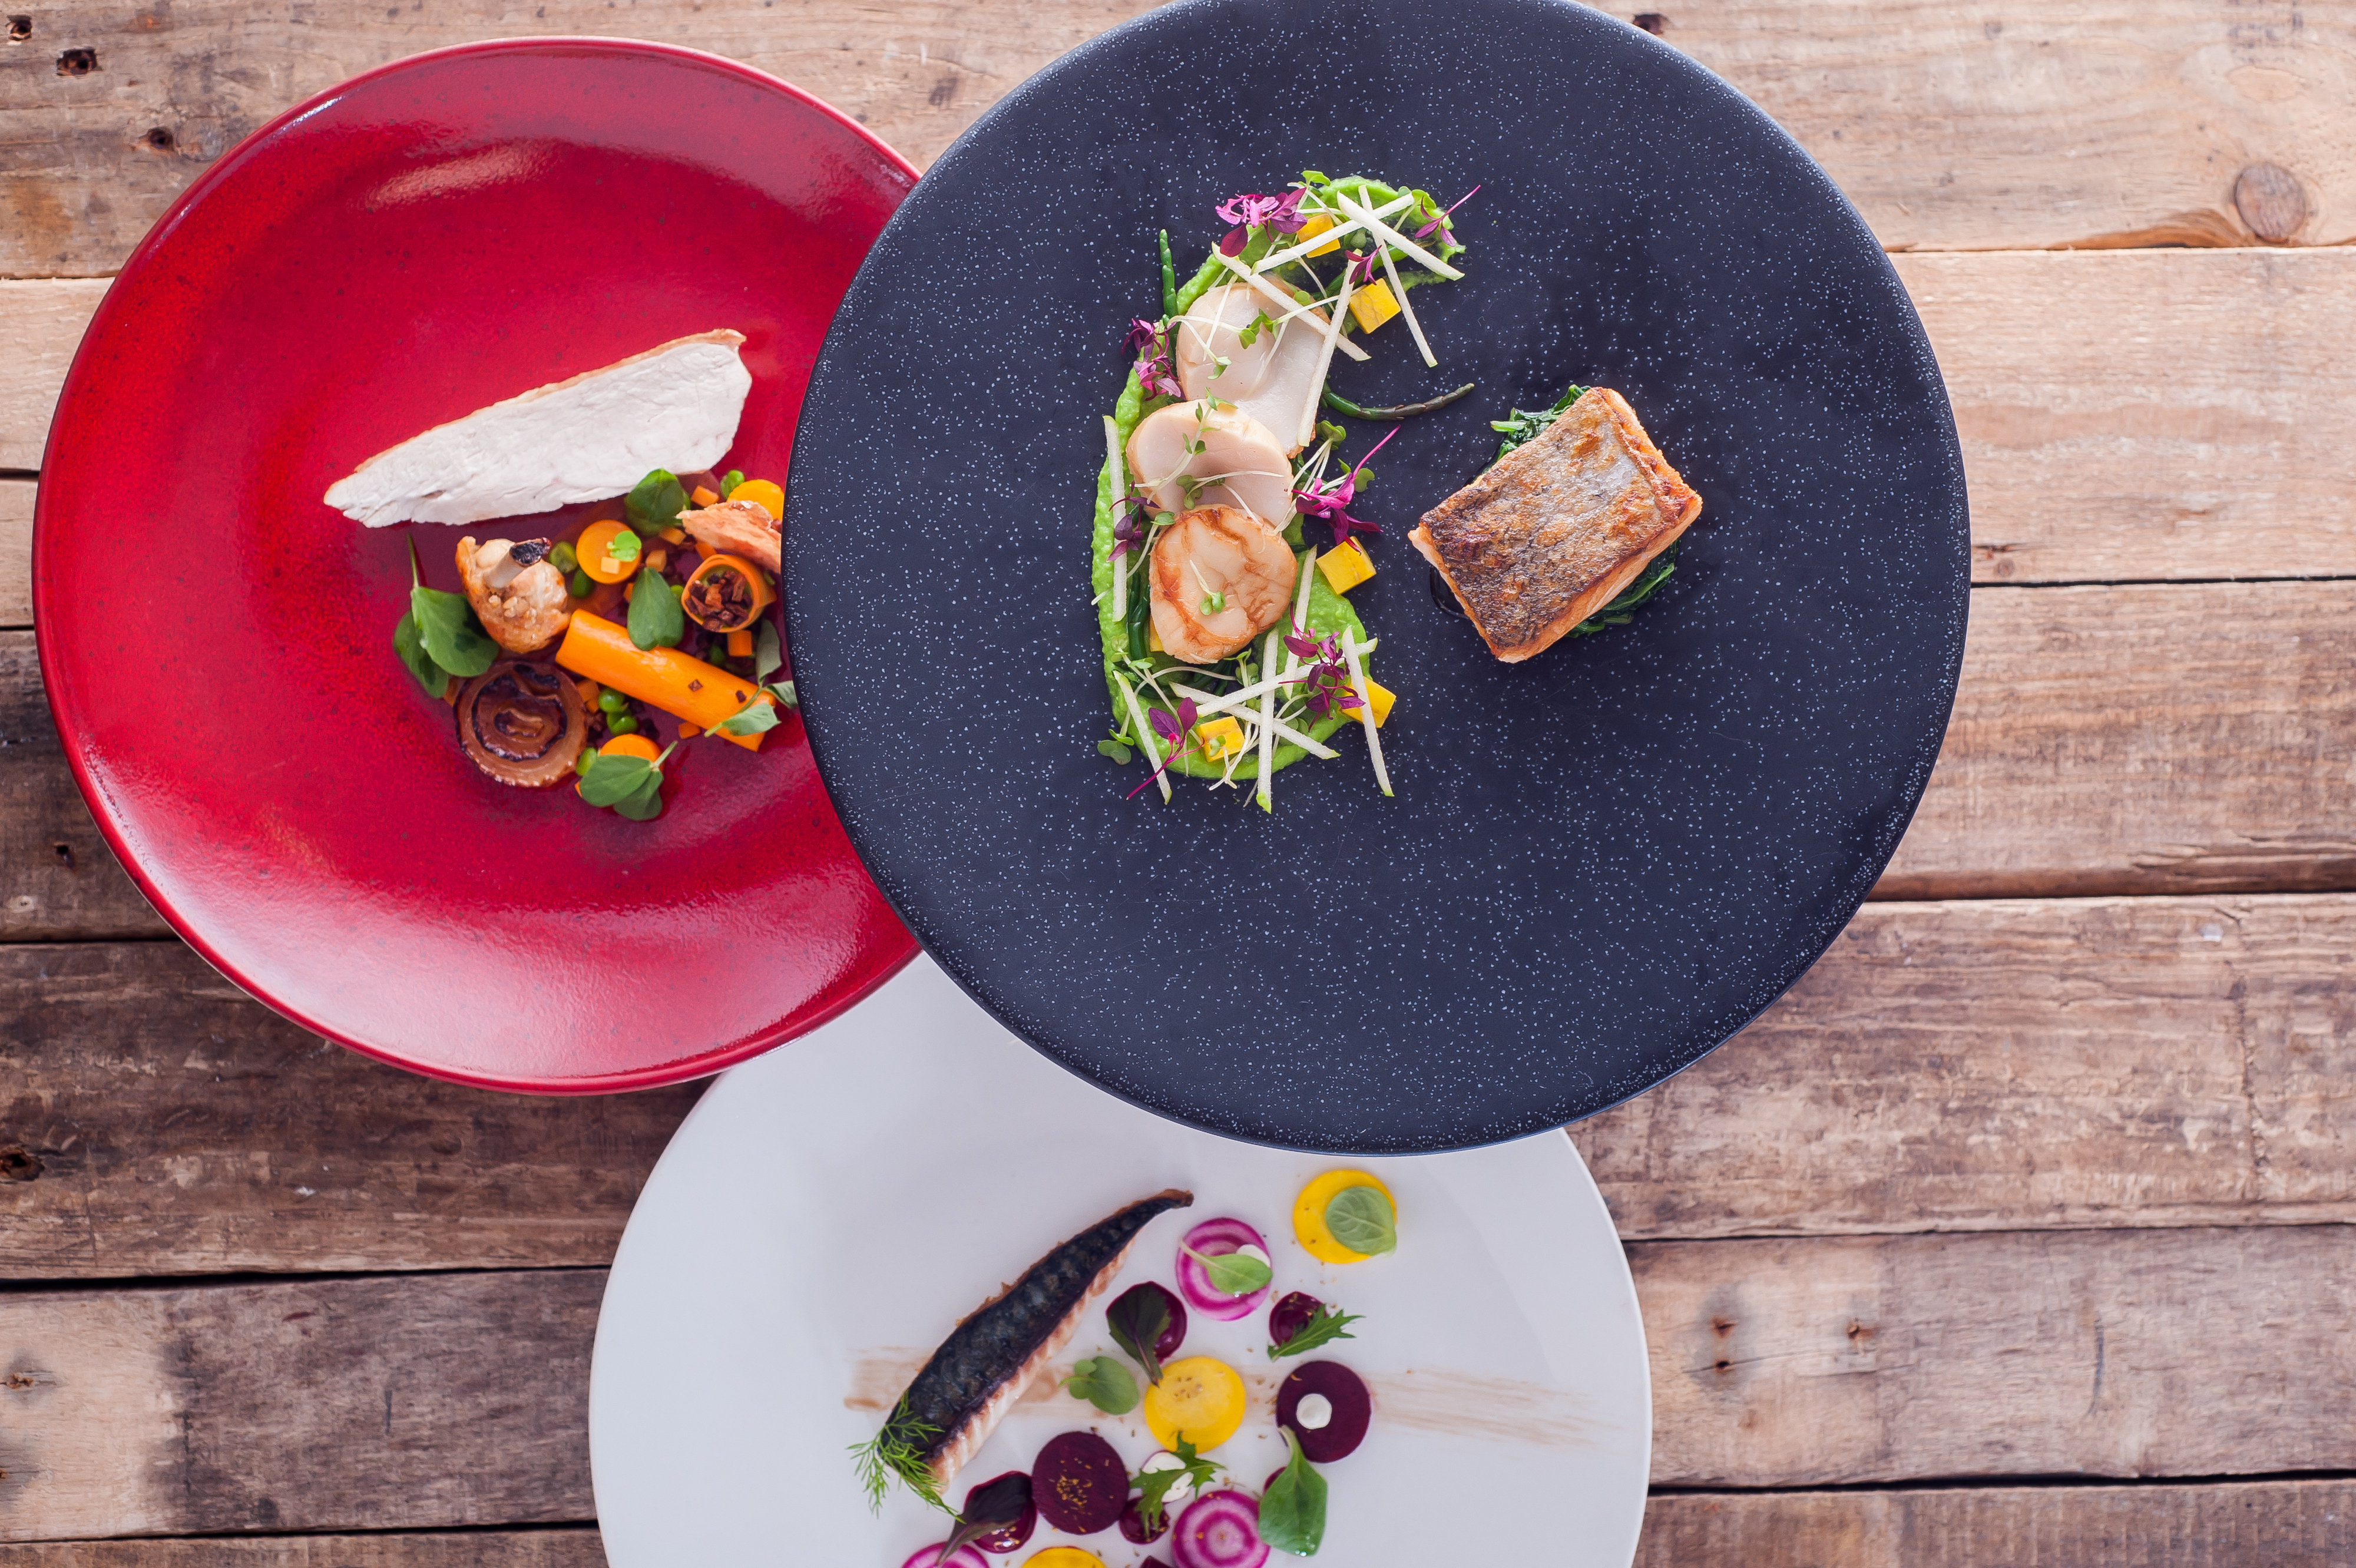 10 Top Tips: How to Present Food Like a Professional Chef